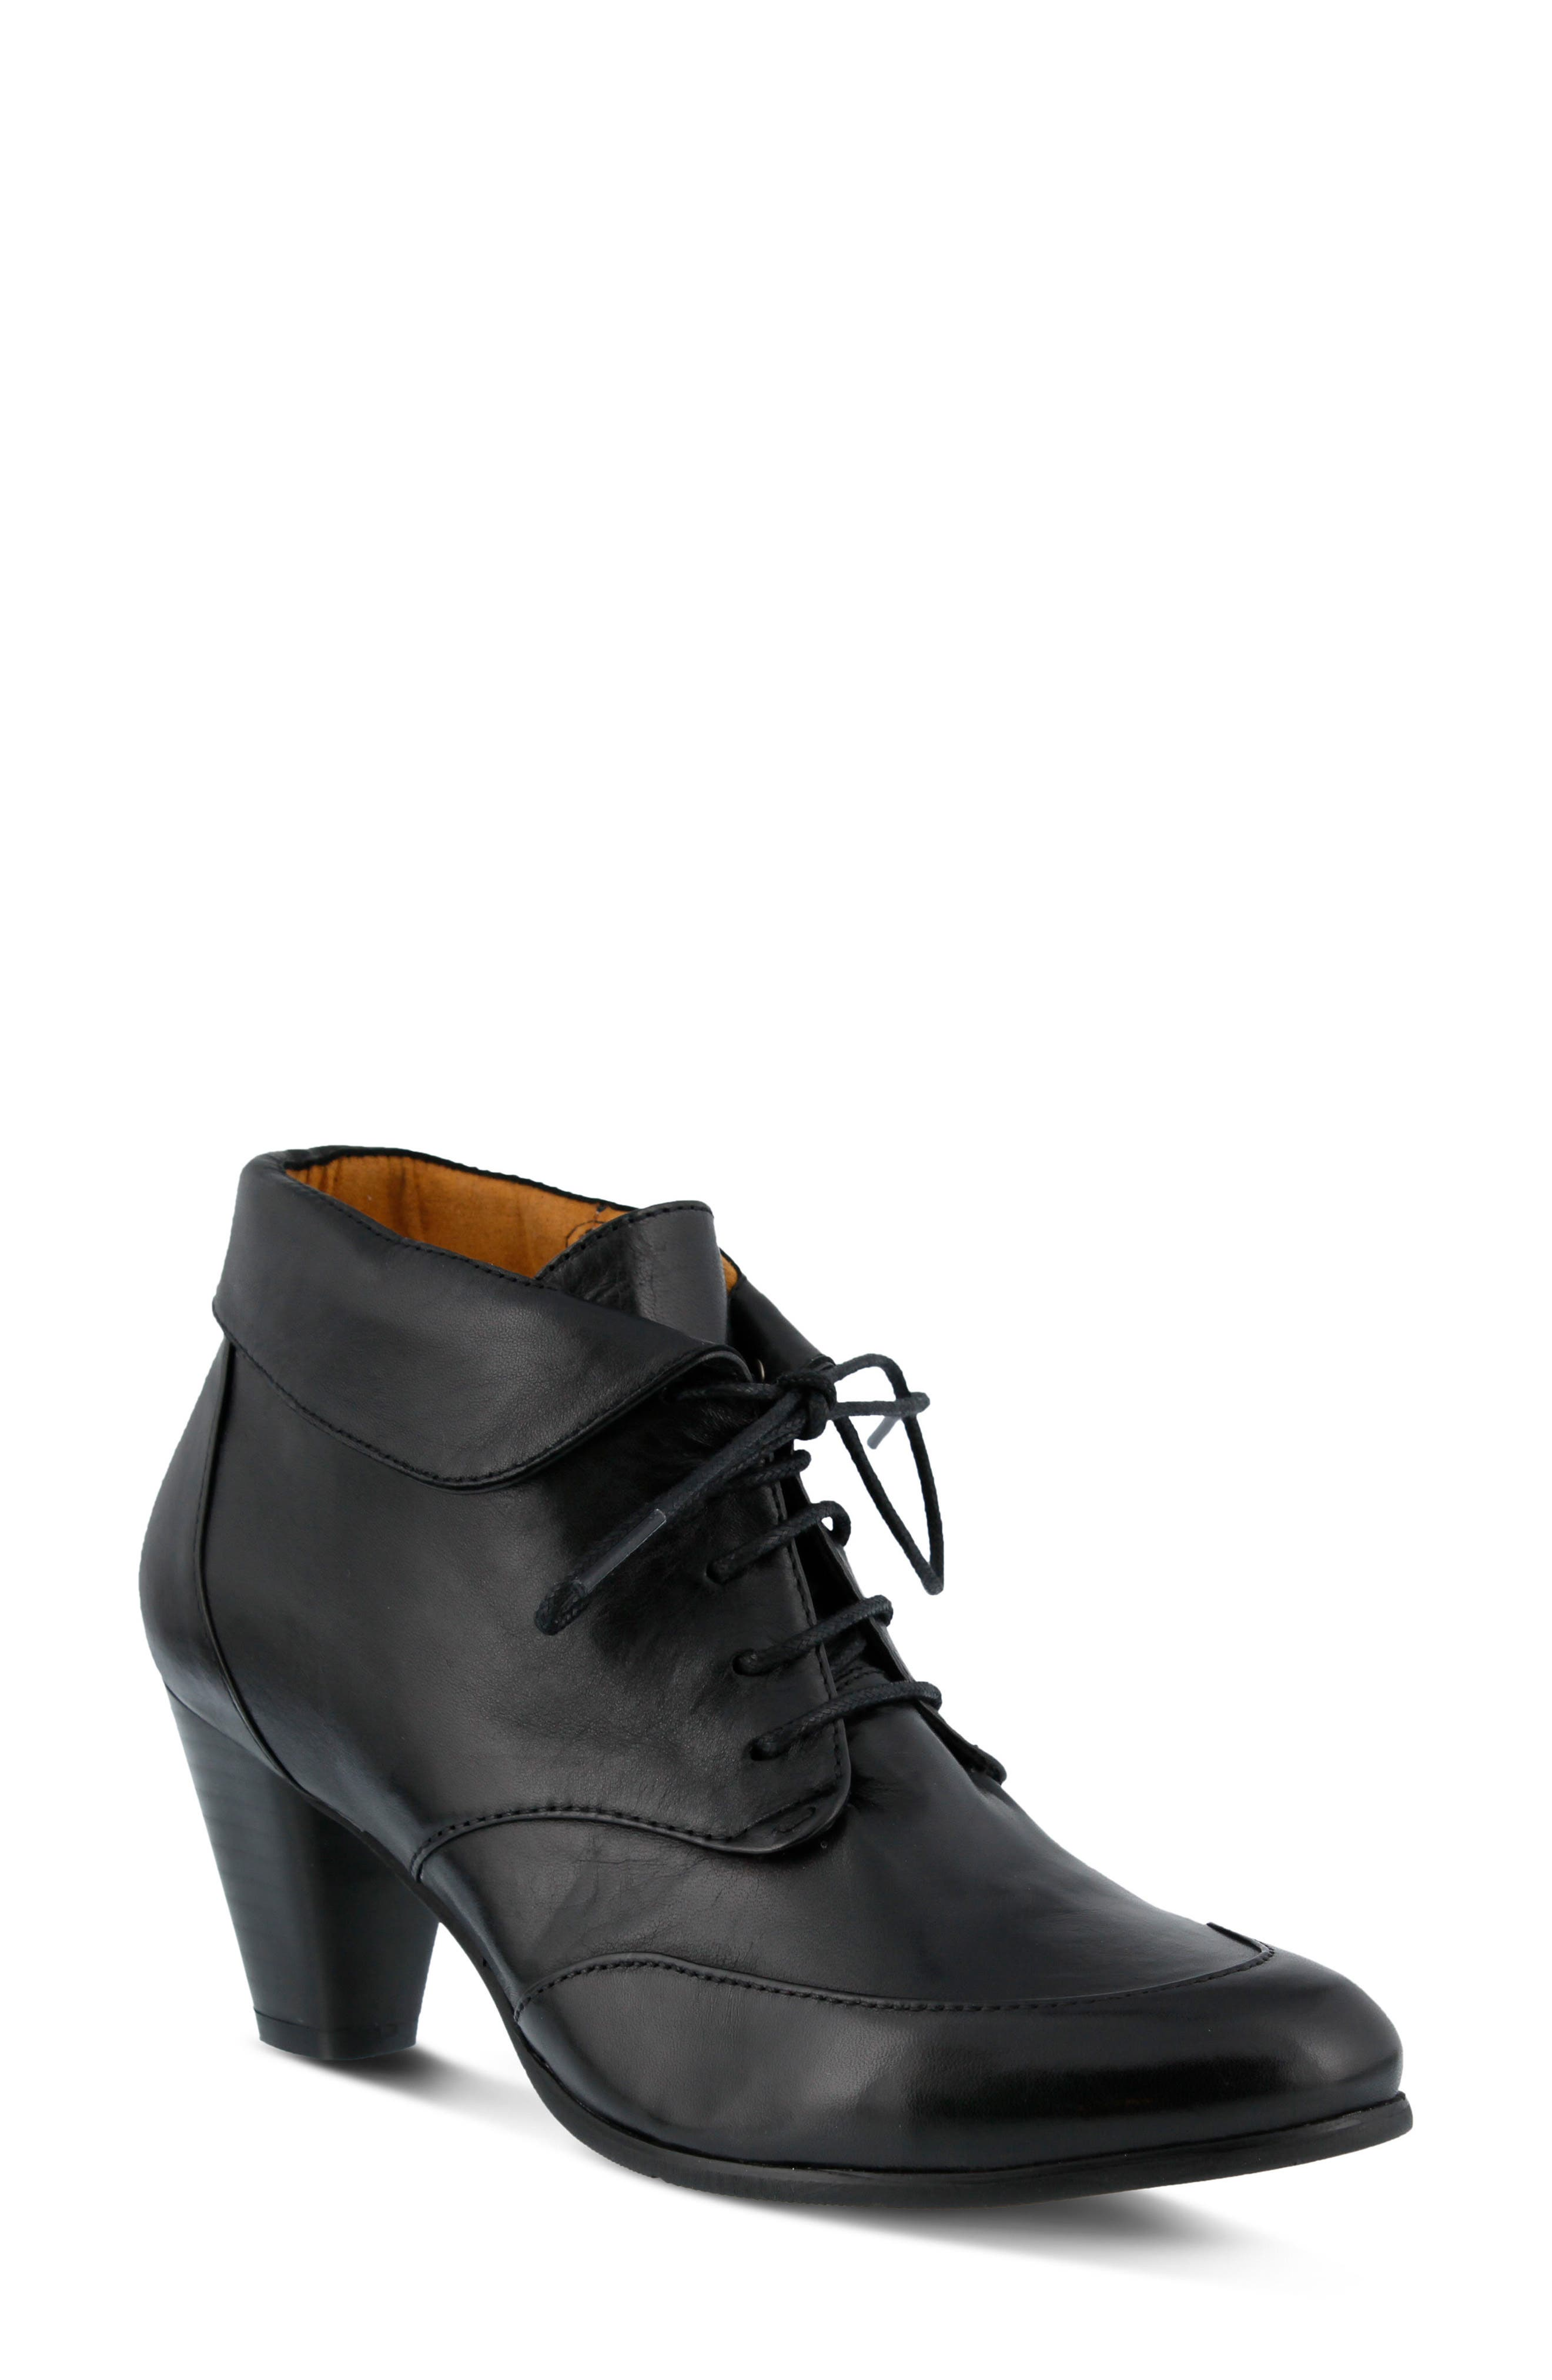 Conquer Foldover Cuff Bootie,                         Main,                         color, Black Leather